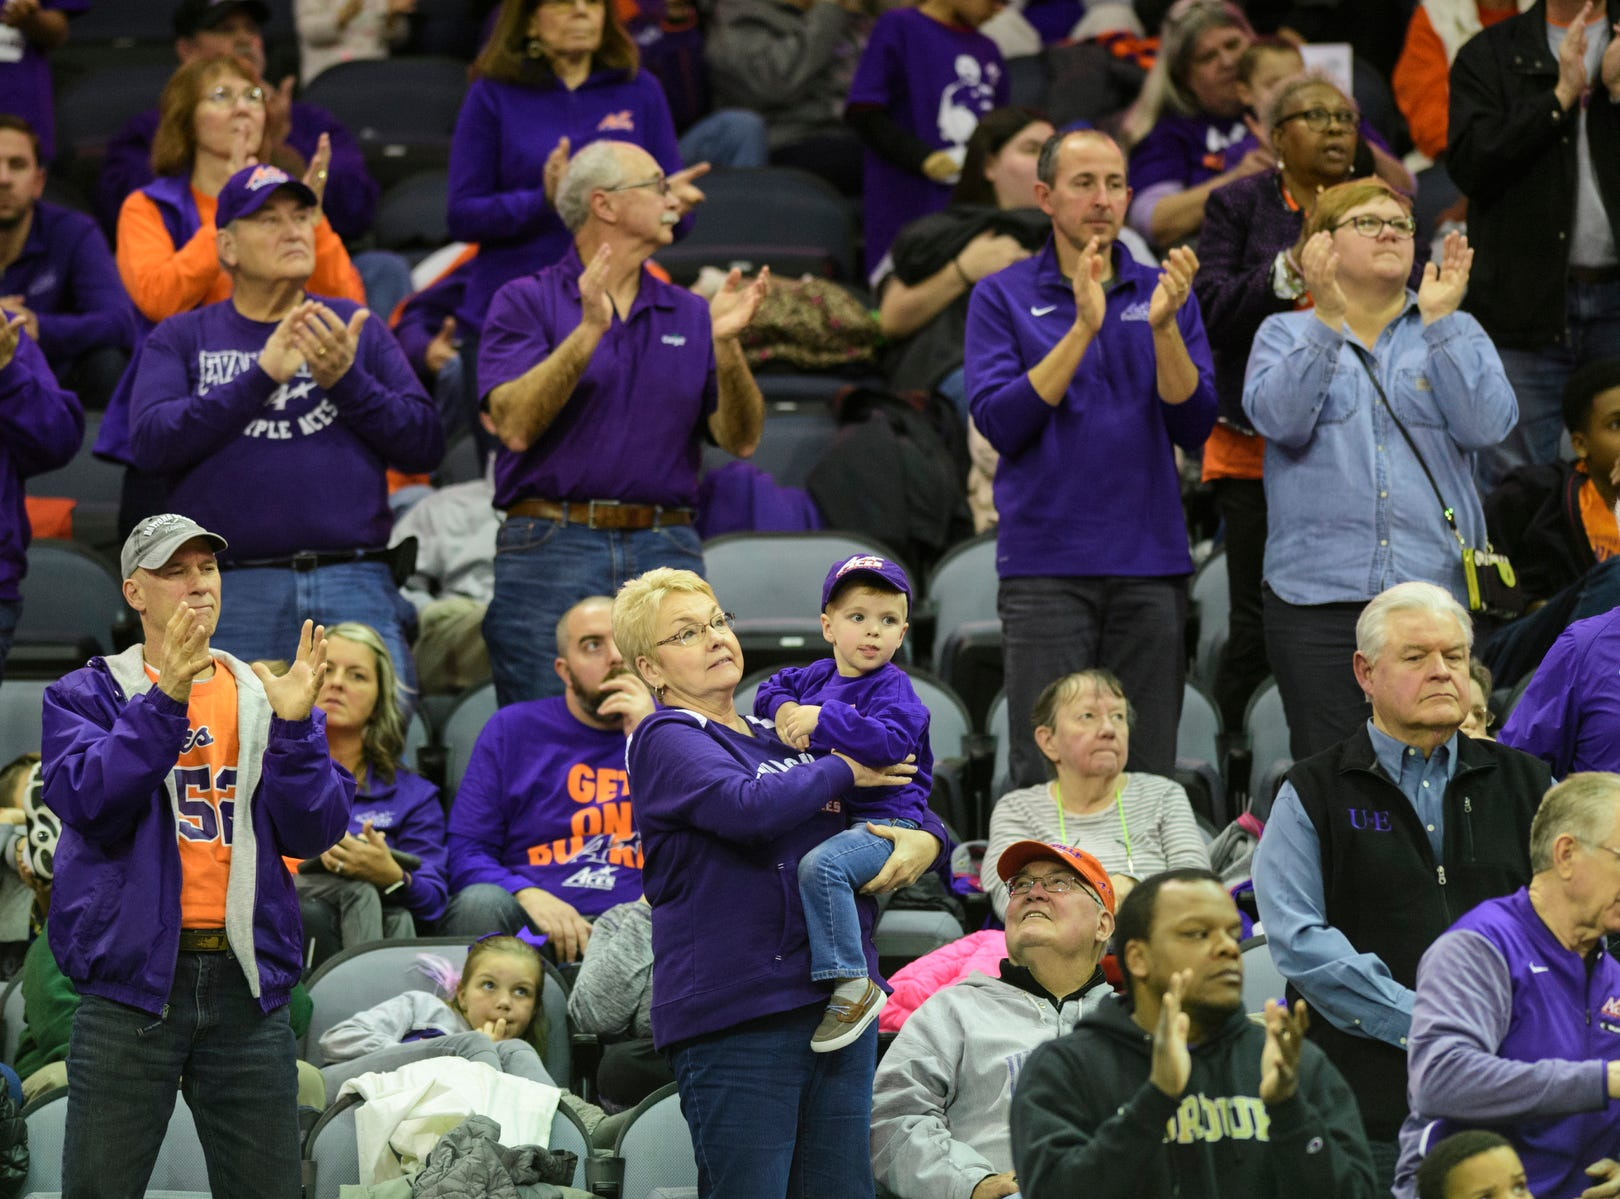 University of Evansville Purple Aces fans cheer for their team during the second half against the University of Wisconsin-Green Bay Phoenix at Ford Center in Evansville, Ind., Saturday, Dec. 22, 2018. The Purple Aces defeated the Phoenix 80-75 in their last non-conference game of the season.